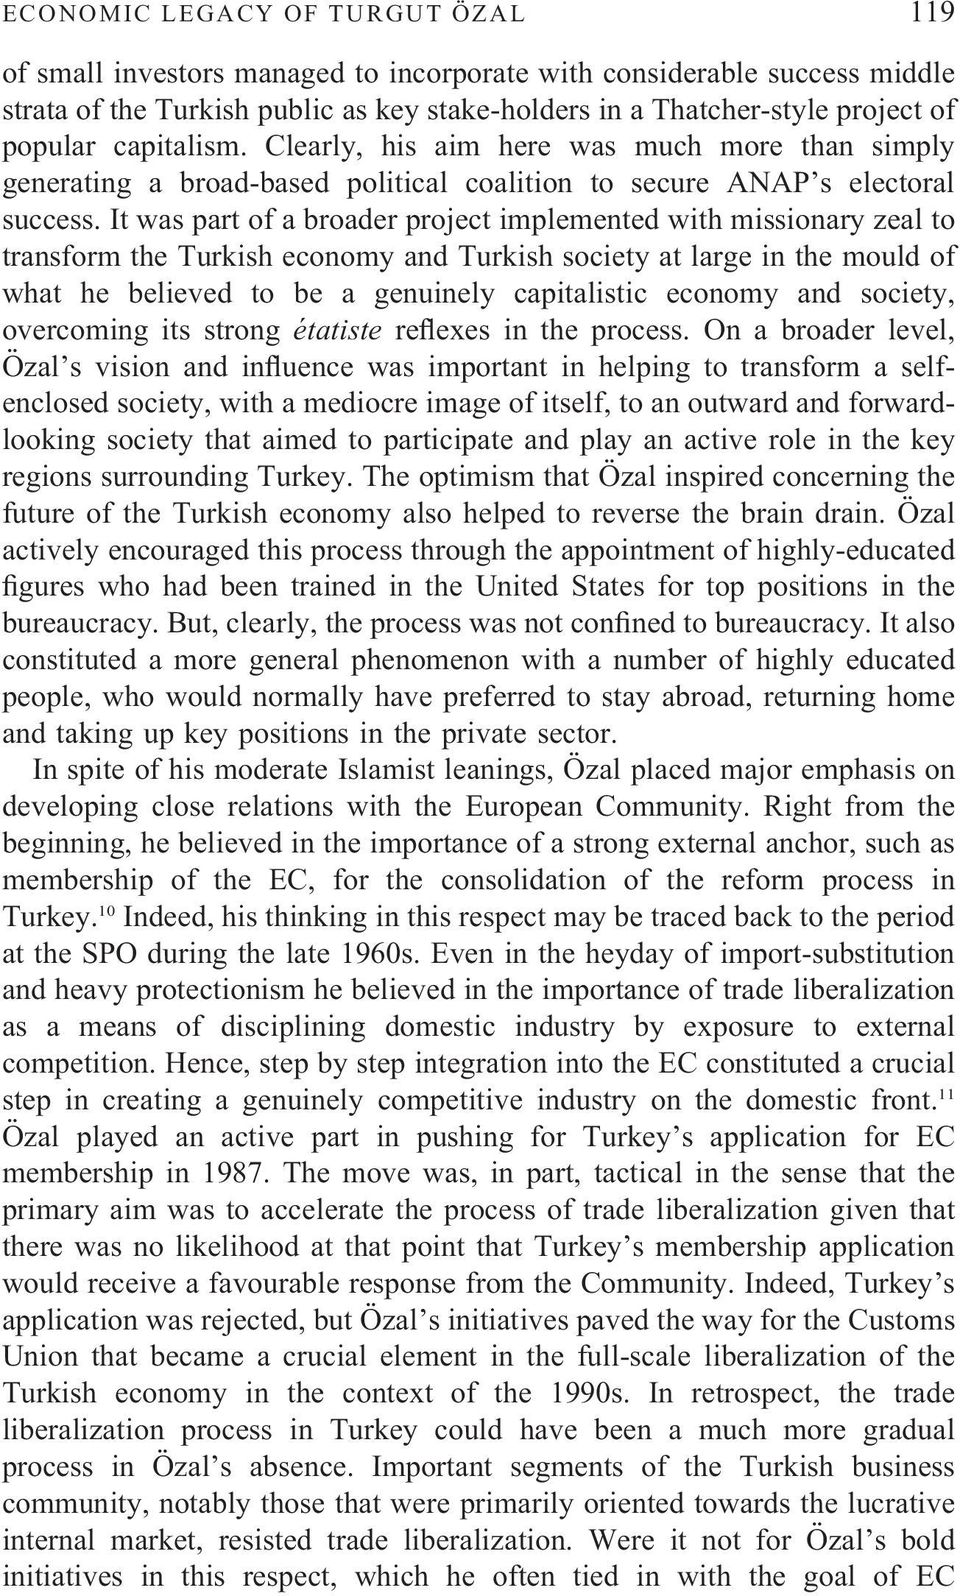 It was part of a broader project implemented with missionary zeal to transform the Turkish economy and Turkish society at large in the mould of what he believed to be a genuinely capitalistic economy